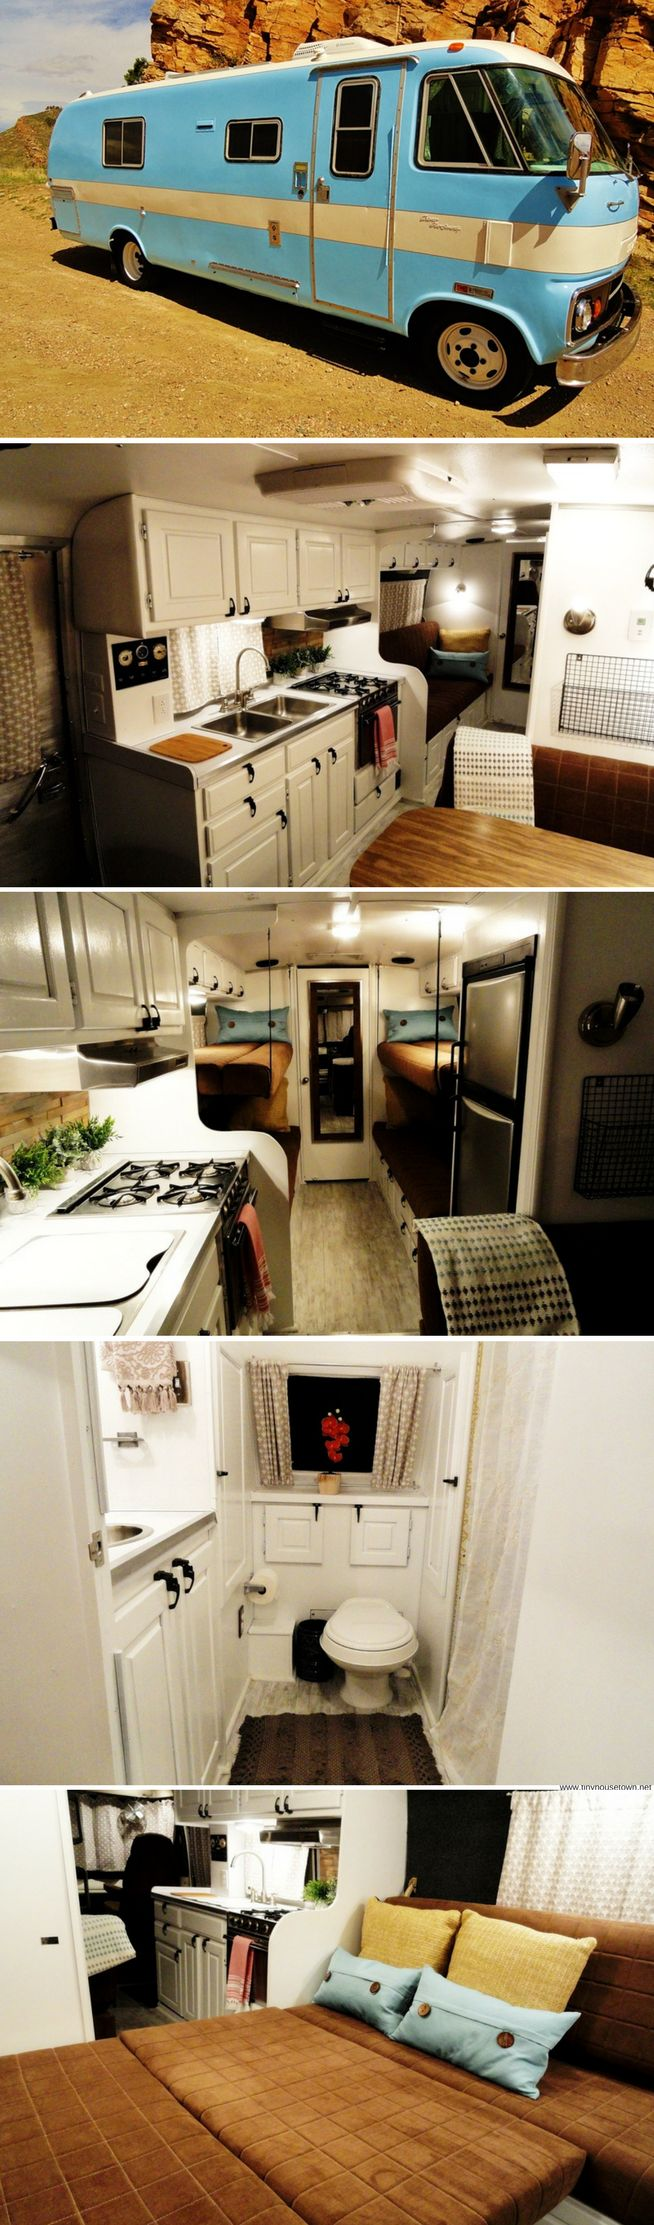 A 1975 Travco that's been upgraded for full-time and off-grid living! It's currently available for sale in Colorado.